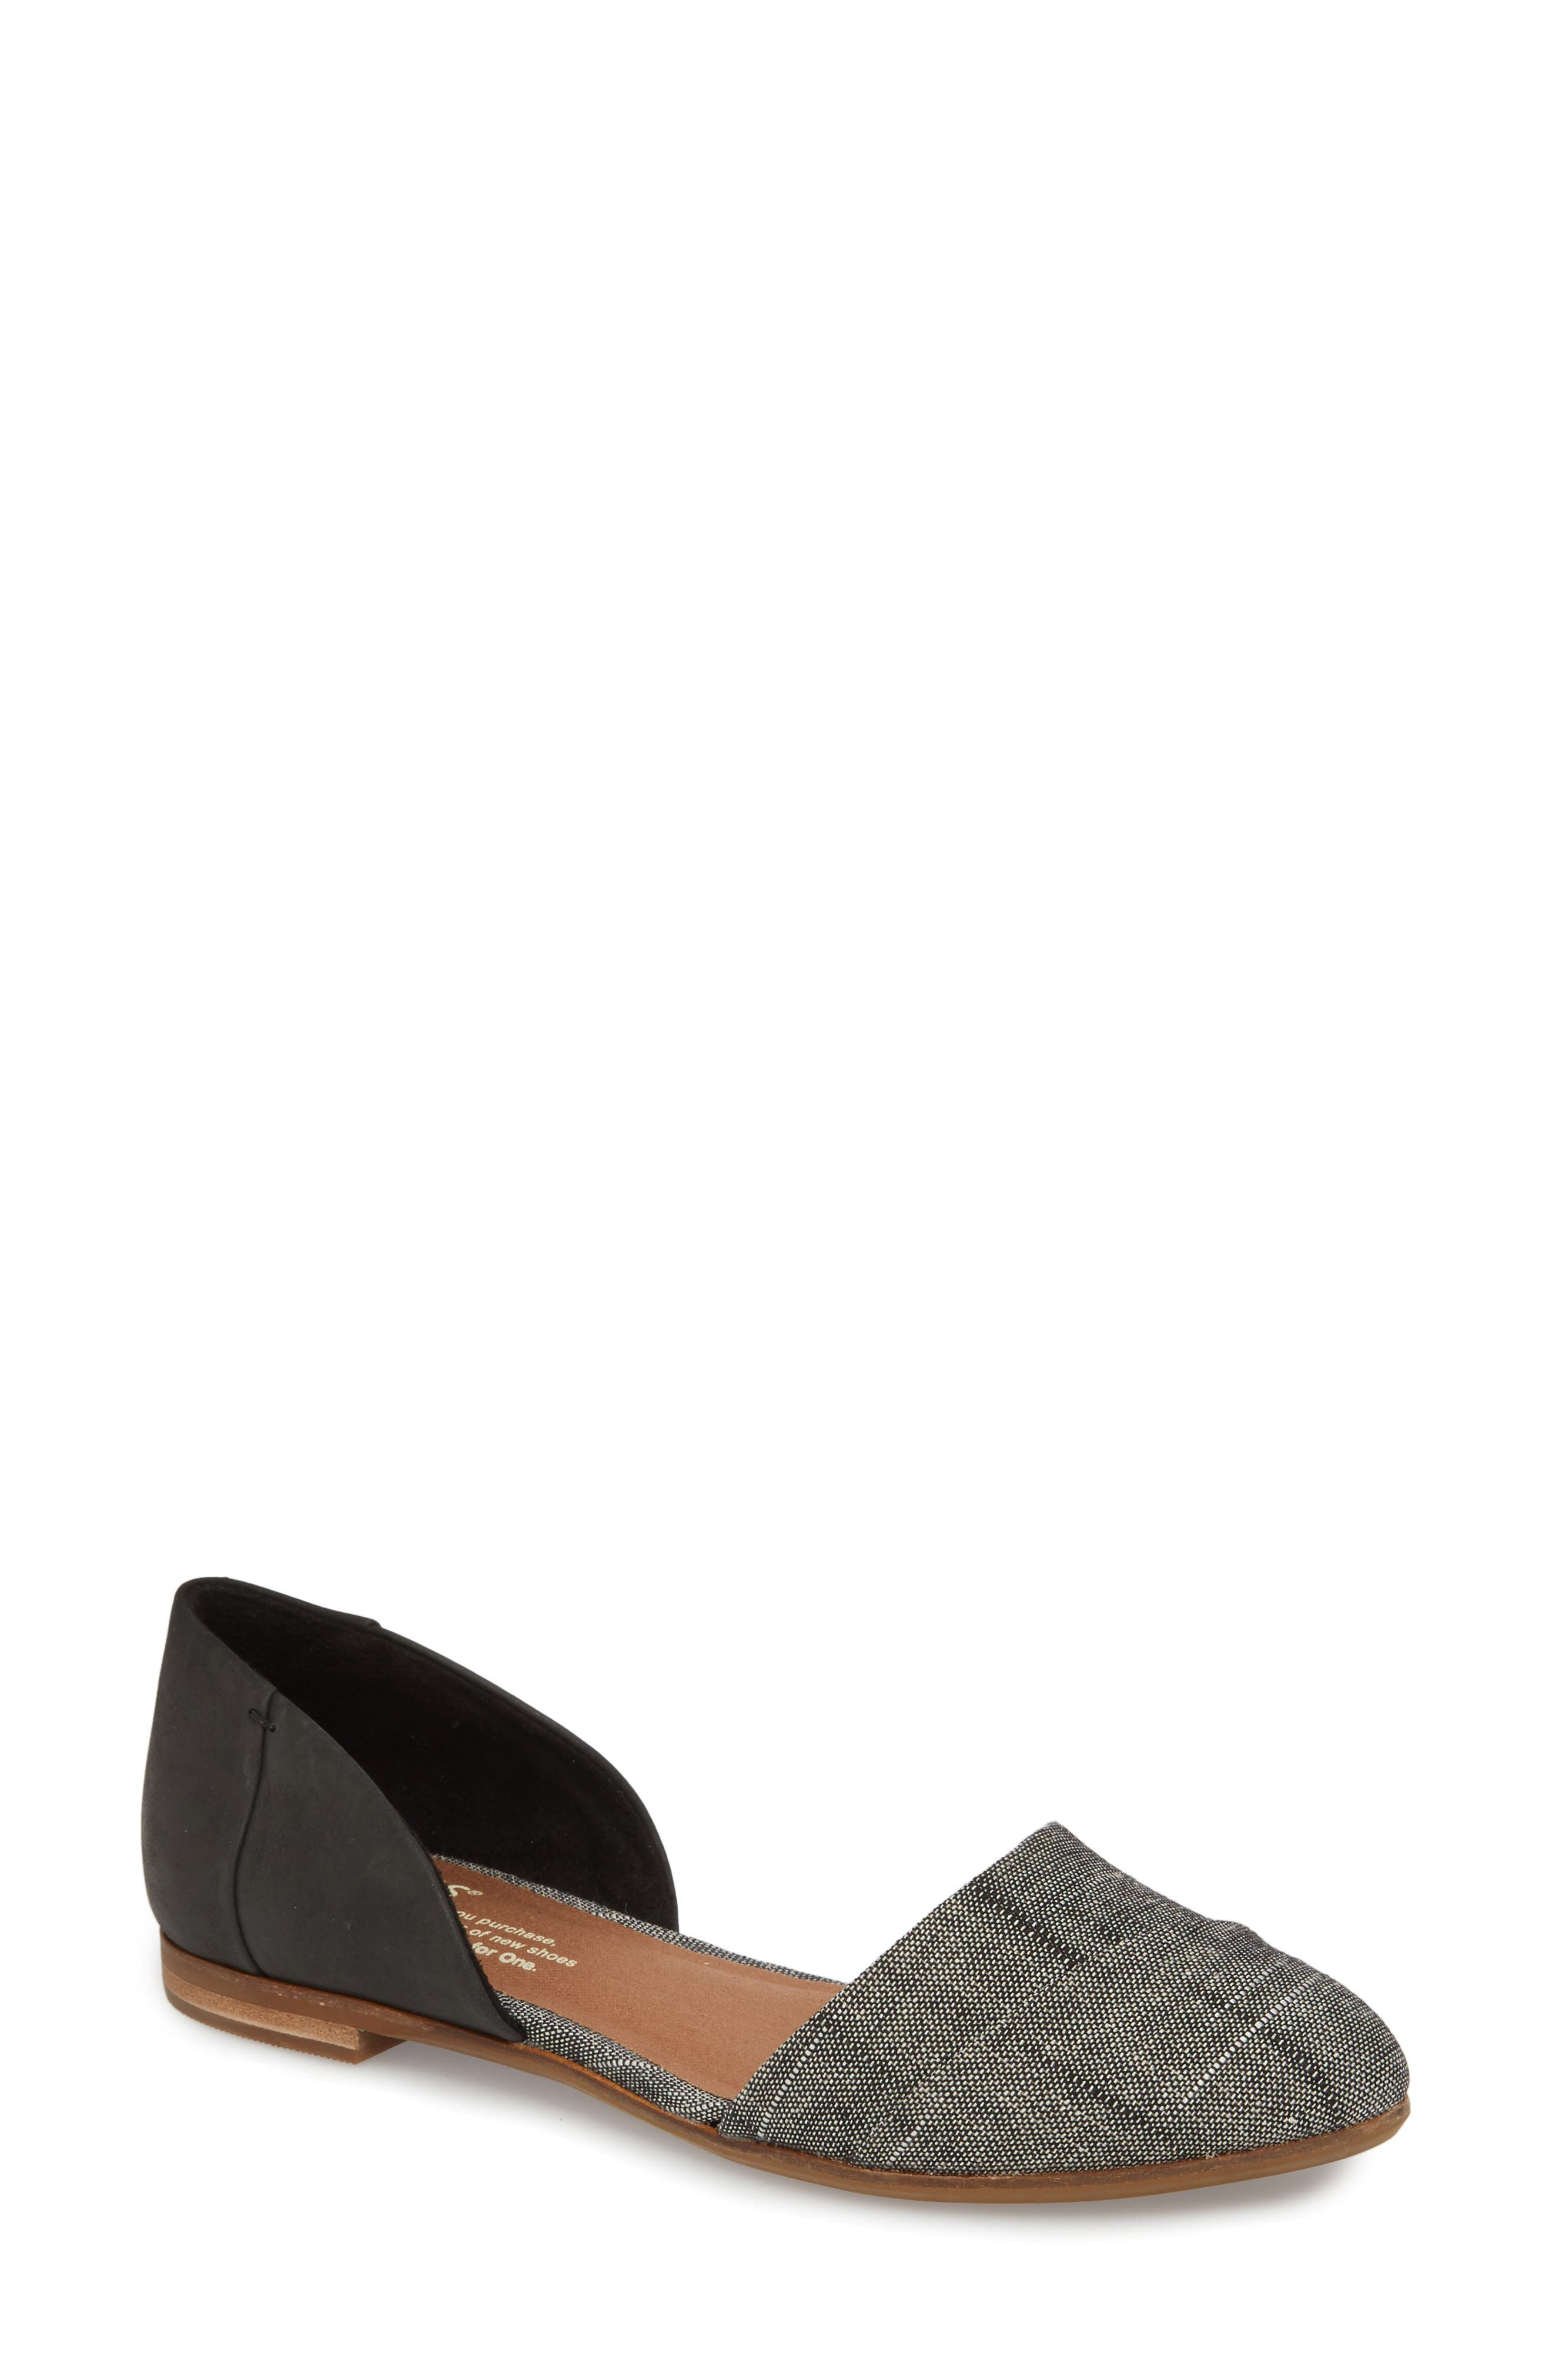 Jutti d'Orsay Flat,                         Main,                         color, BLACK LEATHER/ CHAMBRAY